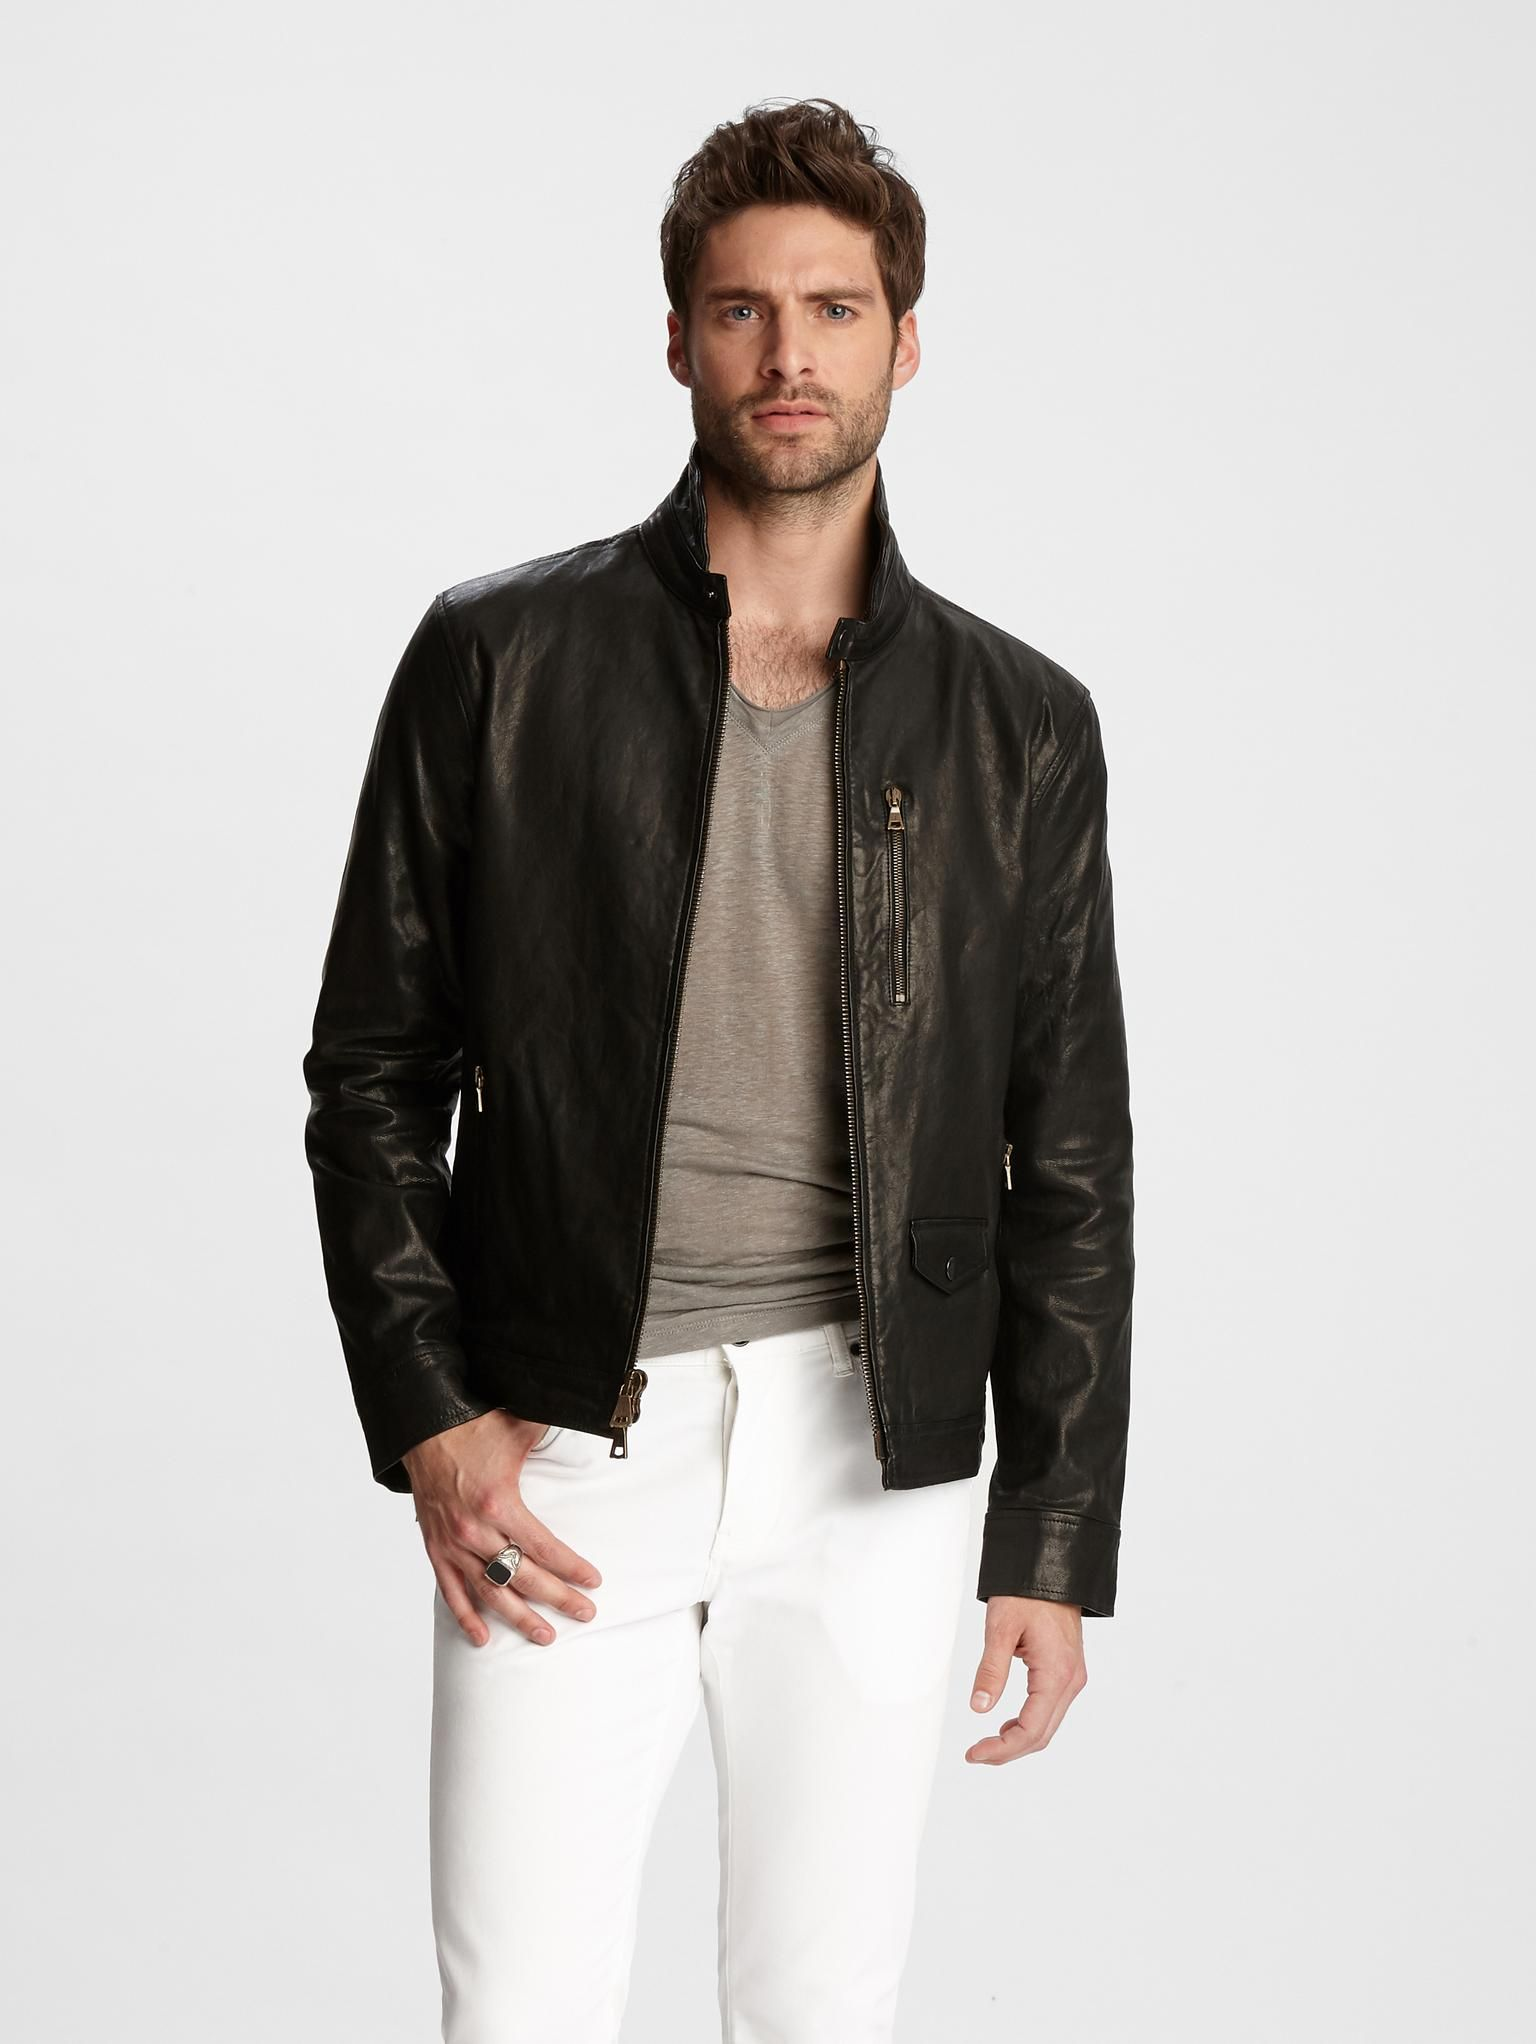 Wire Collar Leather Jacket Leather Jacket Collar Leather Jacket Leather Jeans Men [ 2044 x 1536 Pixel ]